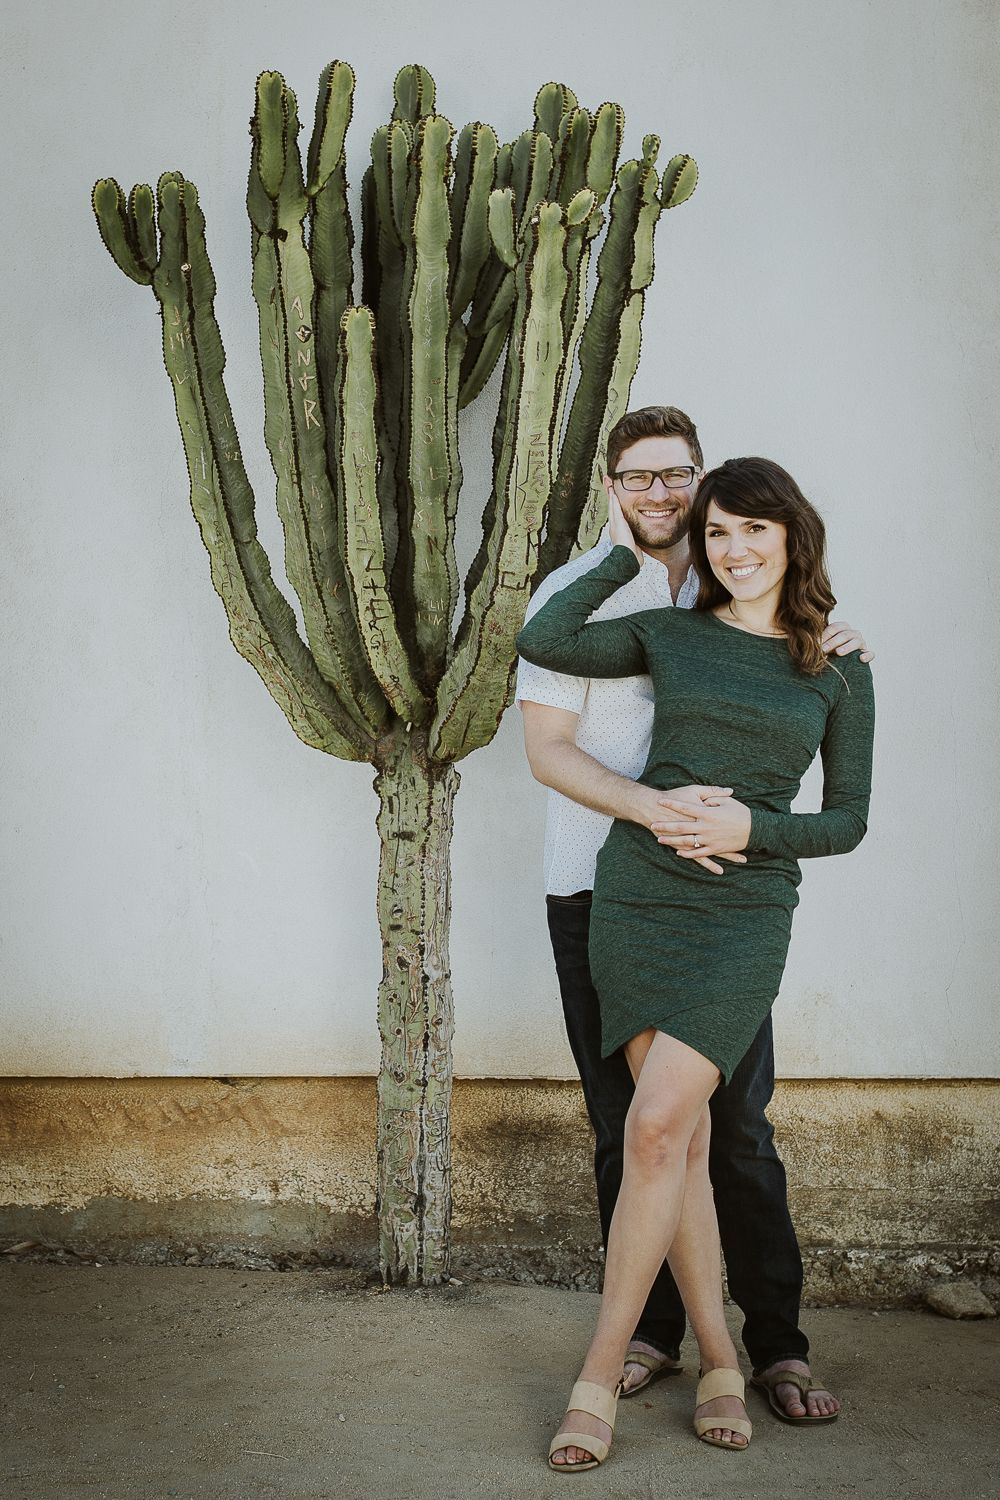 Beach + Cactus Garden Engagement Photos -  Couple goals with this engaged couple during their engagement photo session. We shot this engagemen - #Beach #Cactus #Engagement #EngagementPhotosafricanamerican #EngagementPhotosbeach #EngagementPhotoscountry #EngagementPhotosfall #EngagementPhotosideas #EngagementPhotosoutfits #EngagementPhotosposes #EngagementPhotosspring #EngagementPhotoswinter #EngagementPhotoswithdog #Garden #Photos #summerEngagementPhotos #uniqueEngagementPhotos